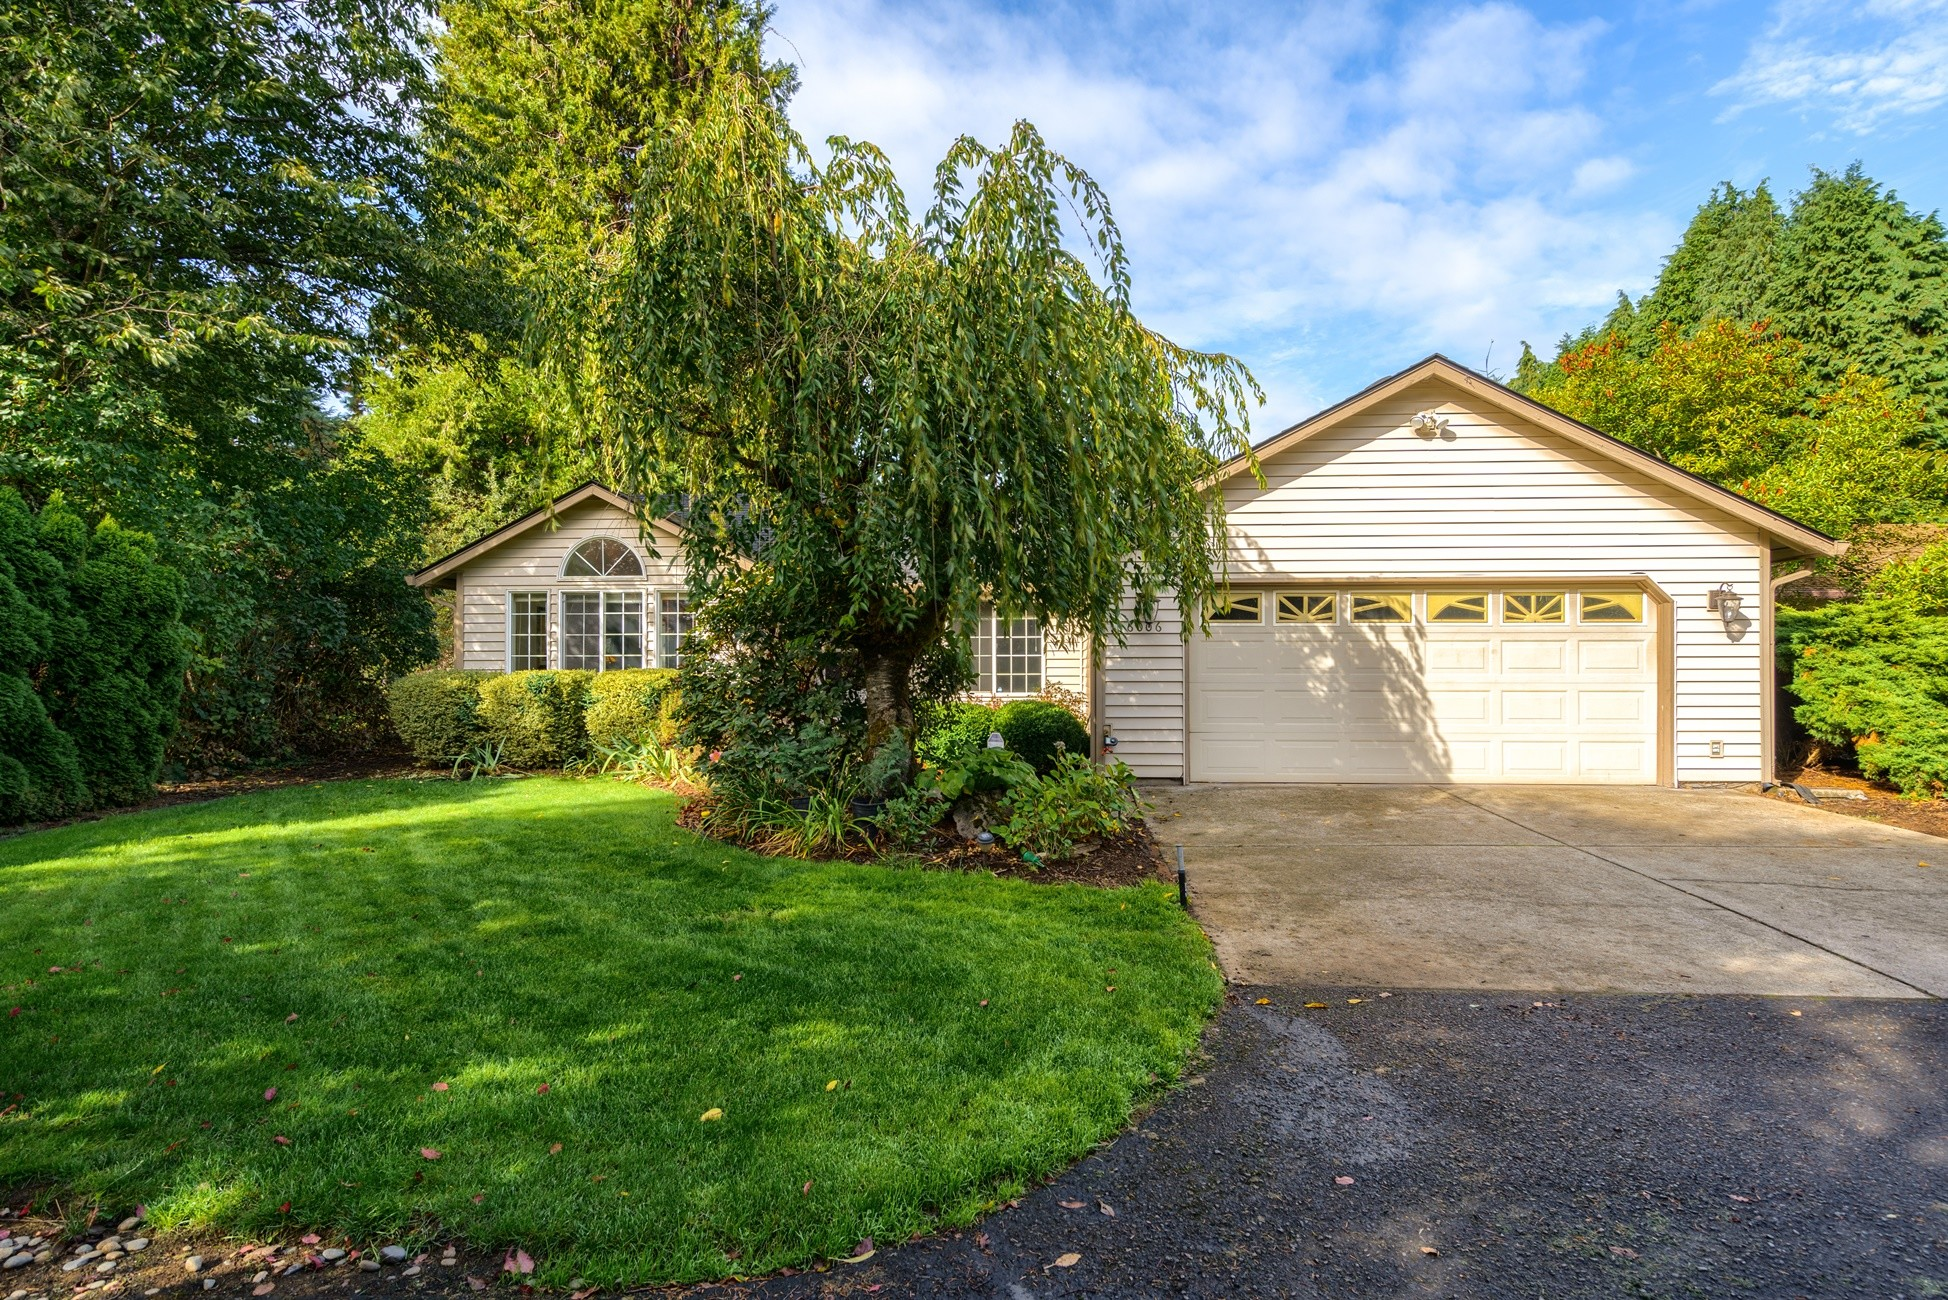 3-Bedroom House In Northwest Vancouver